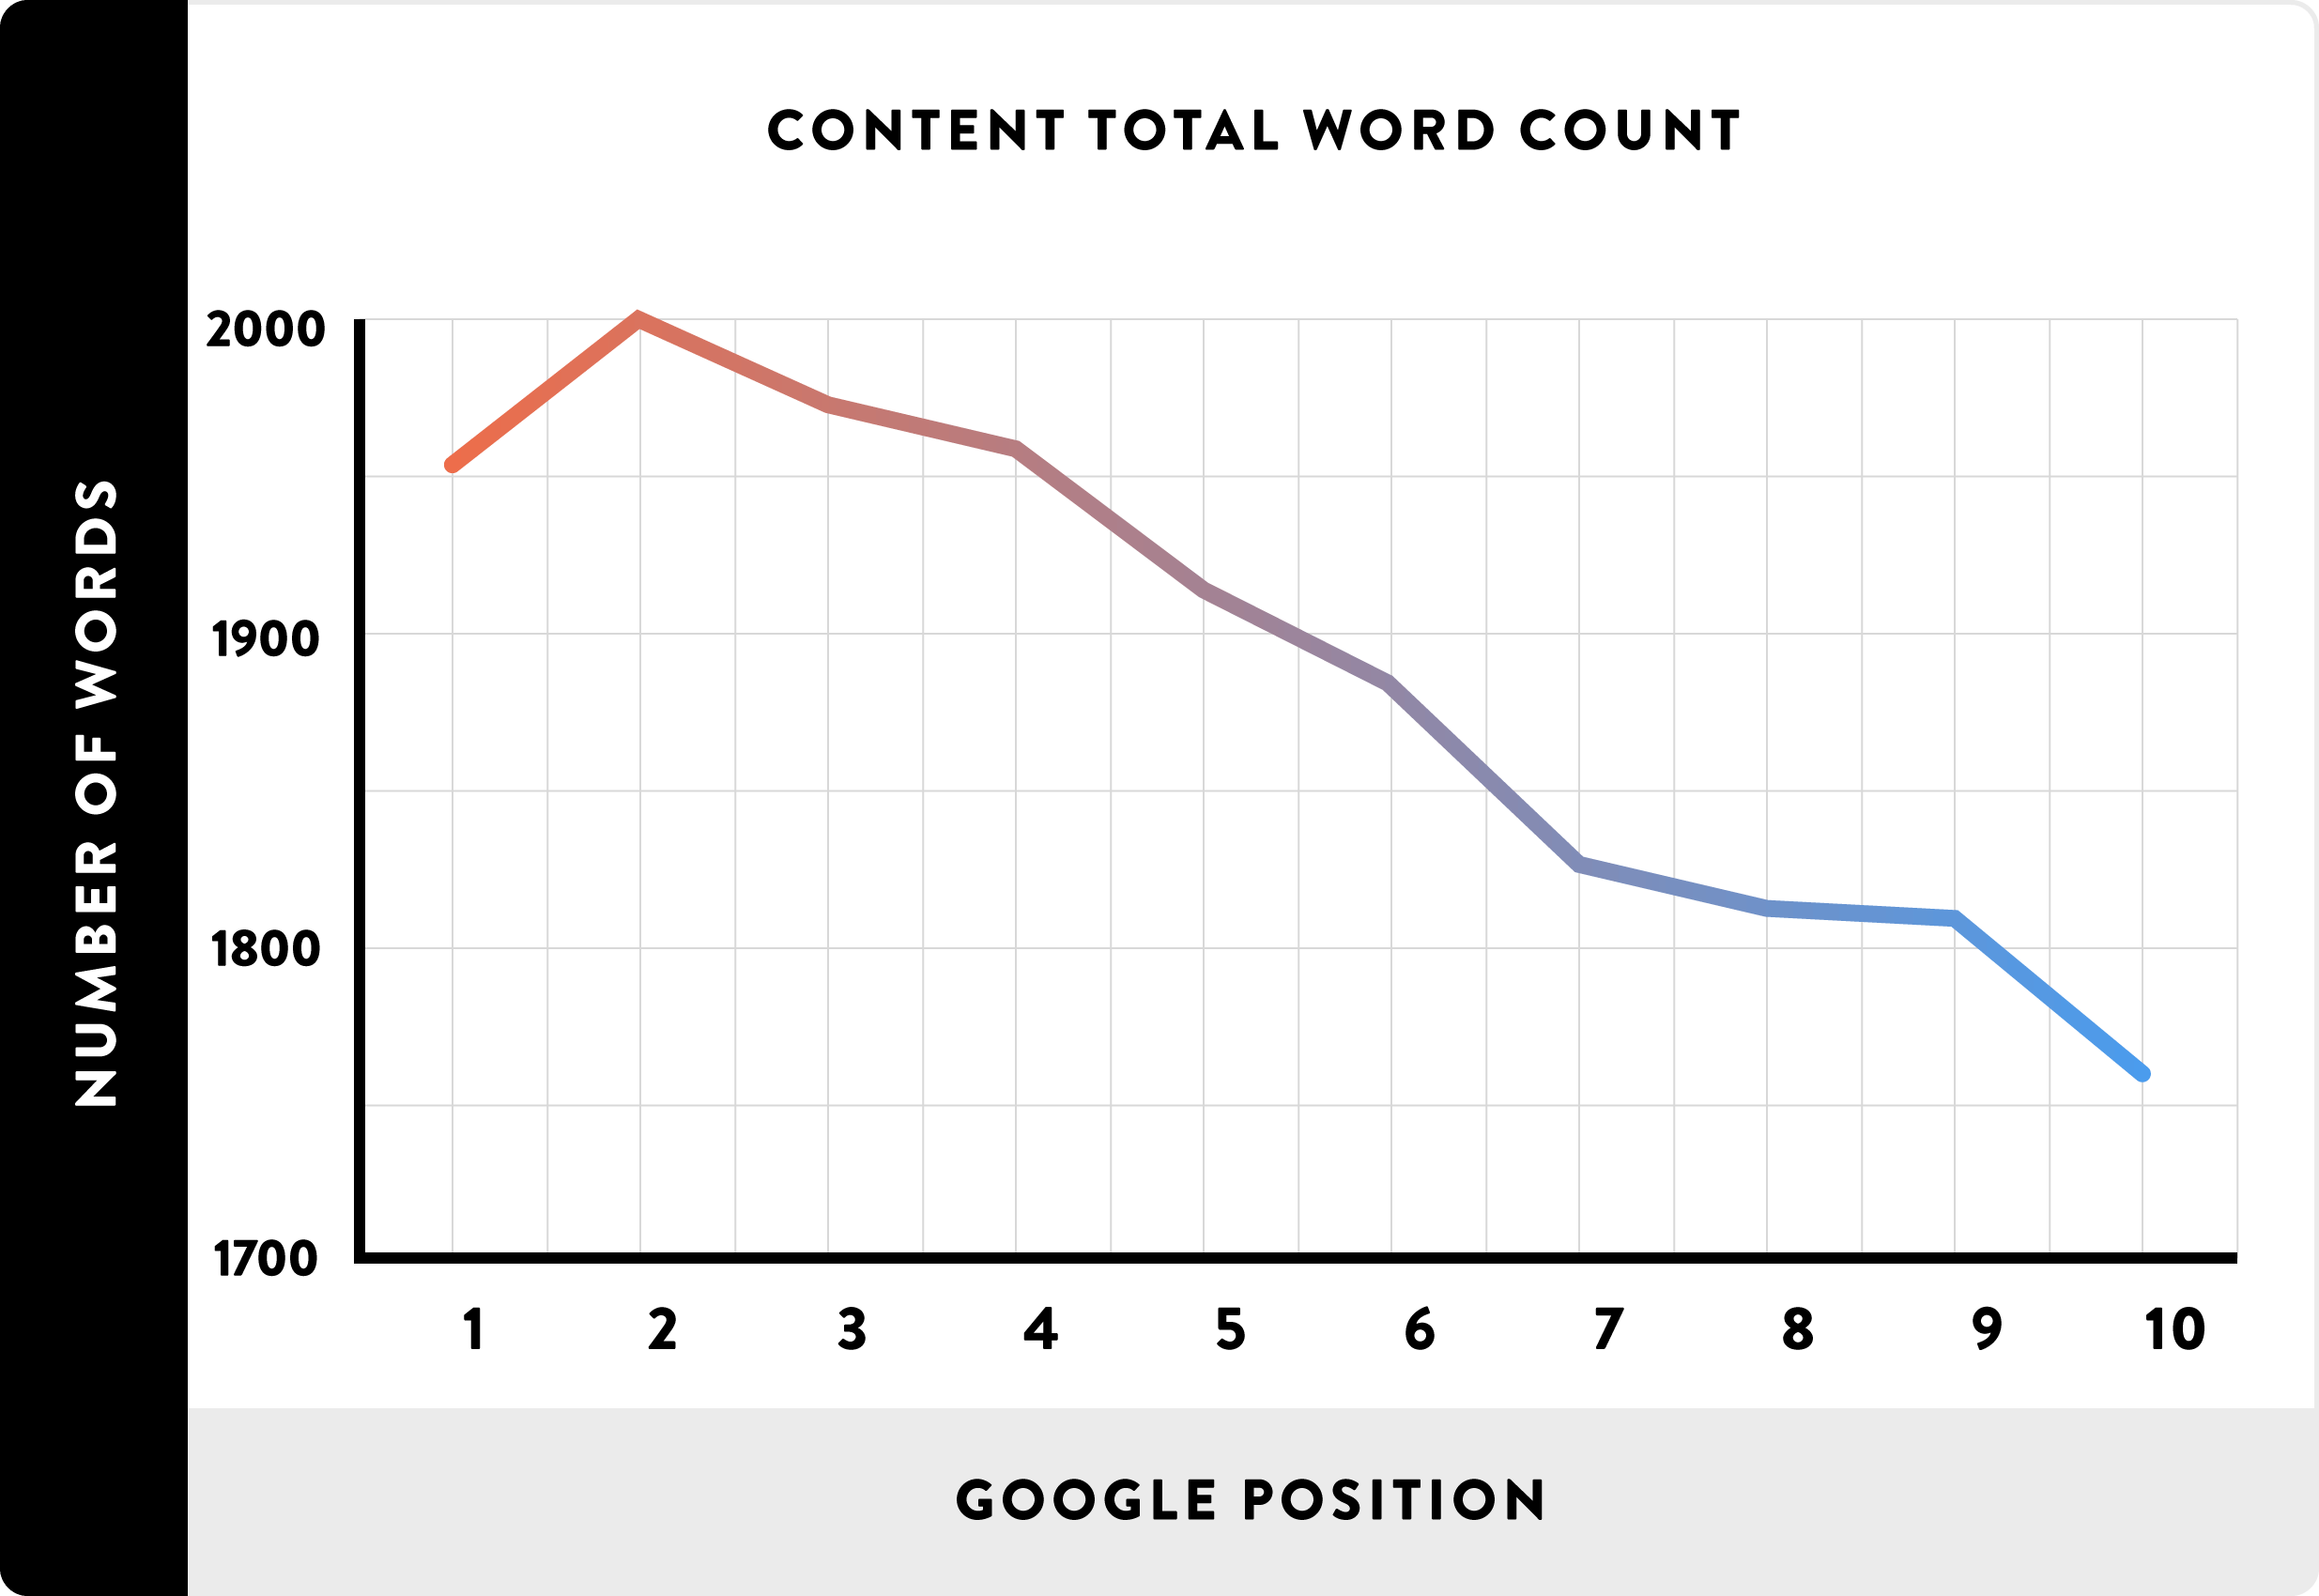 02_Content Total Word Count_line